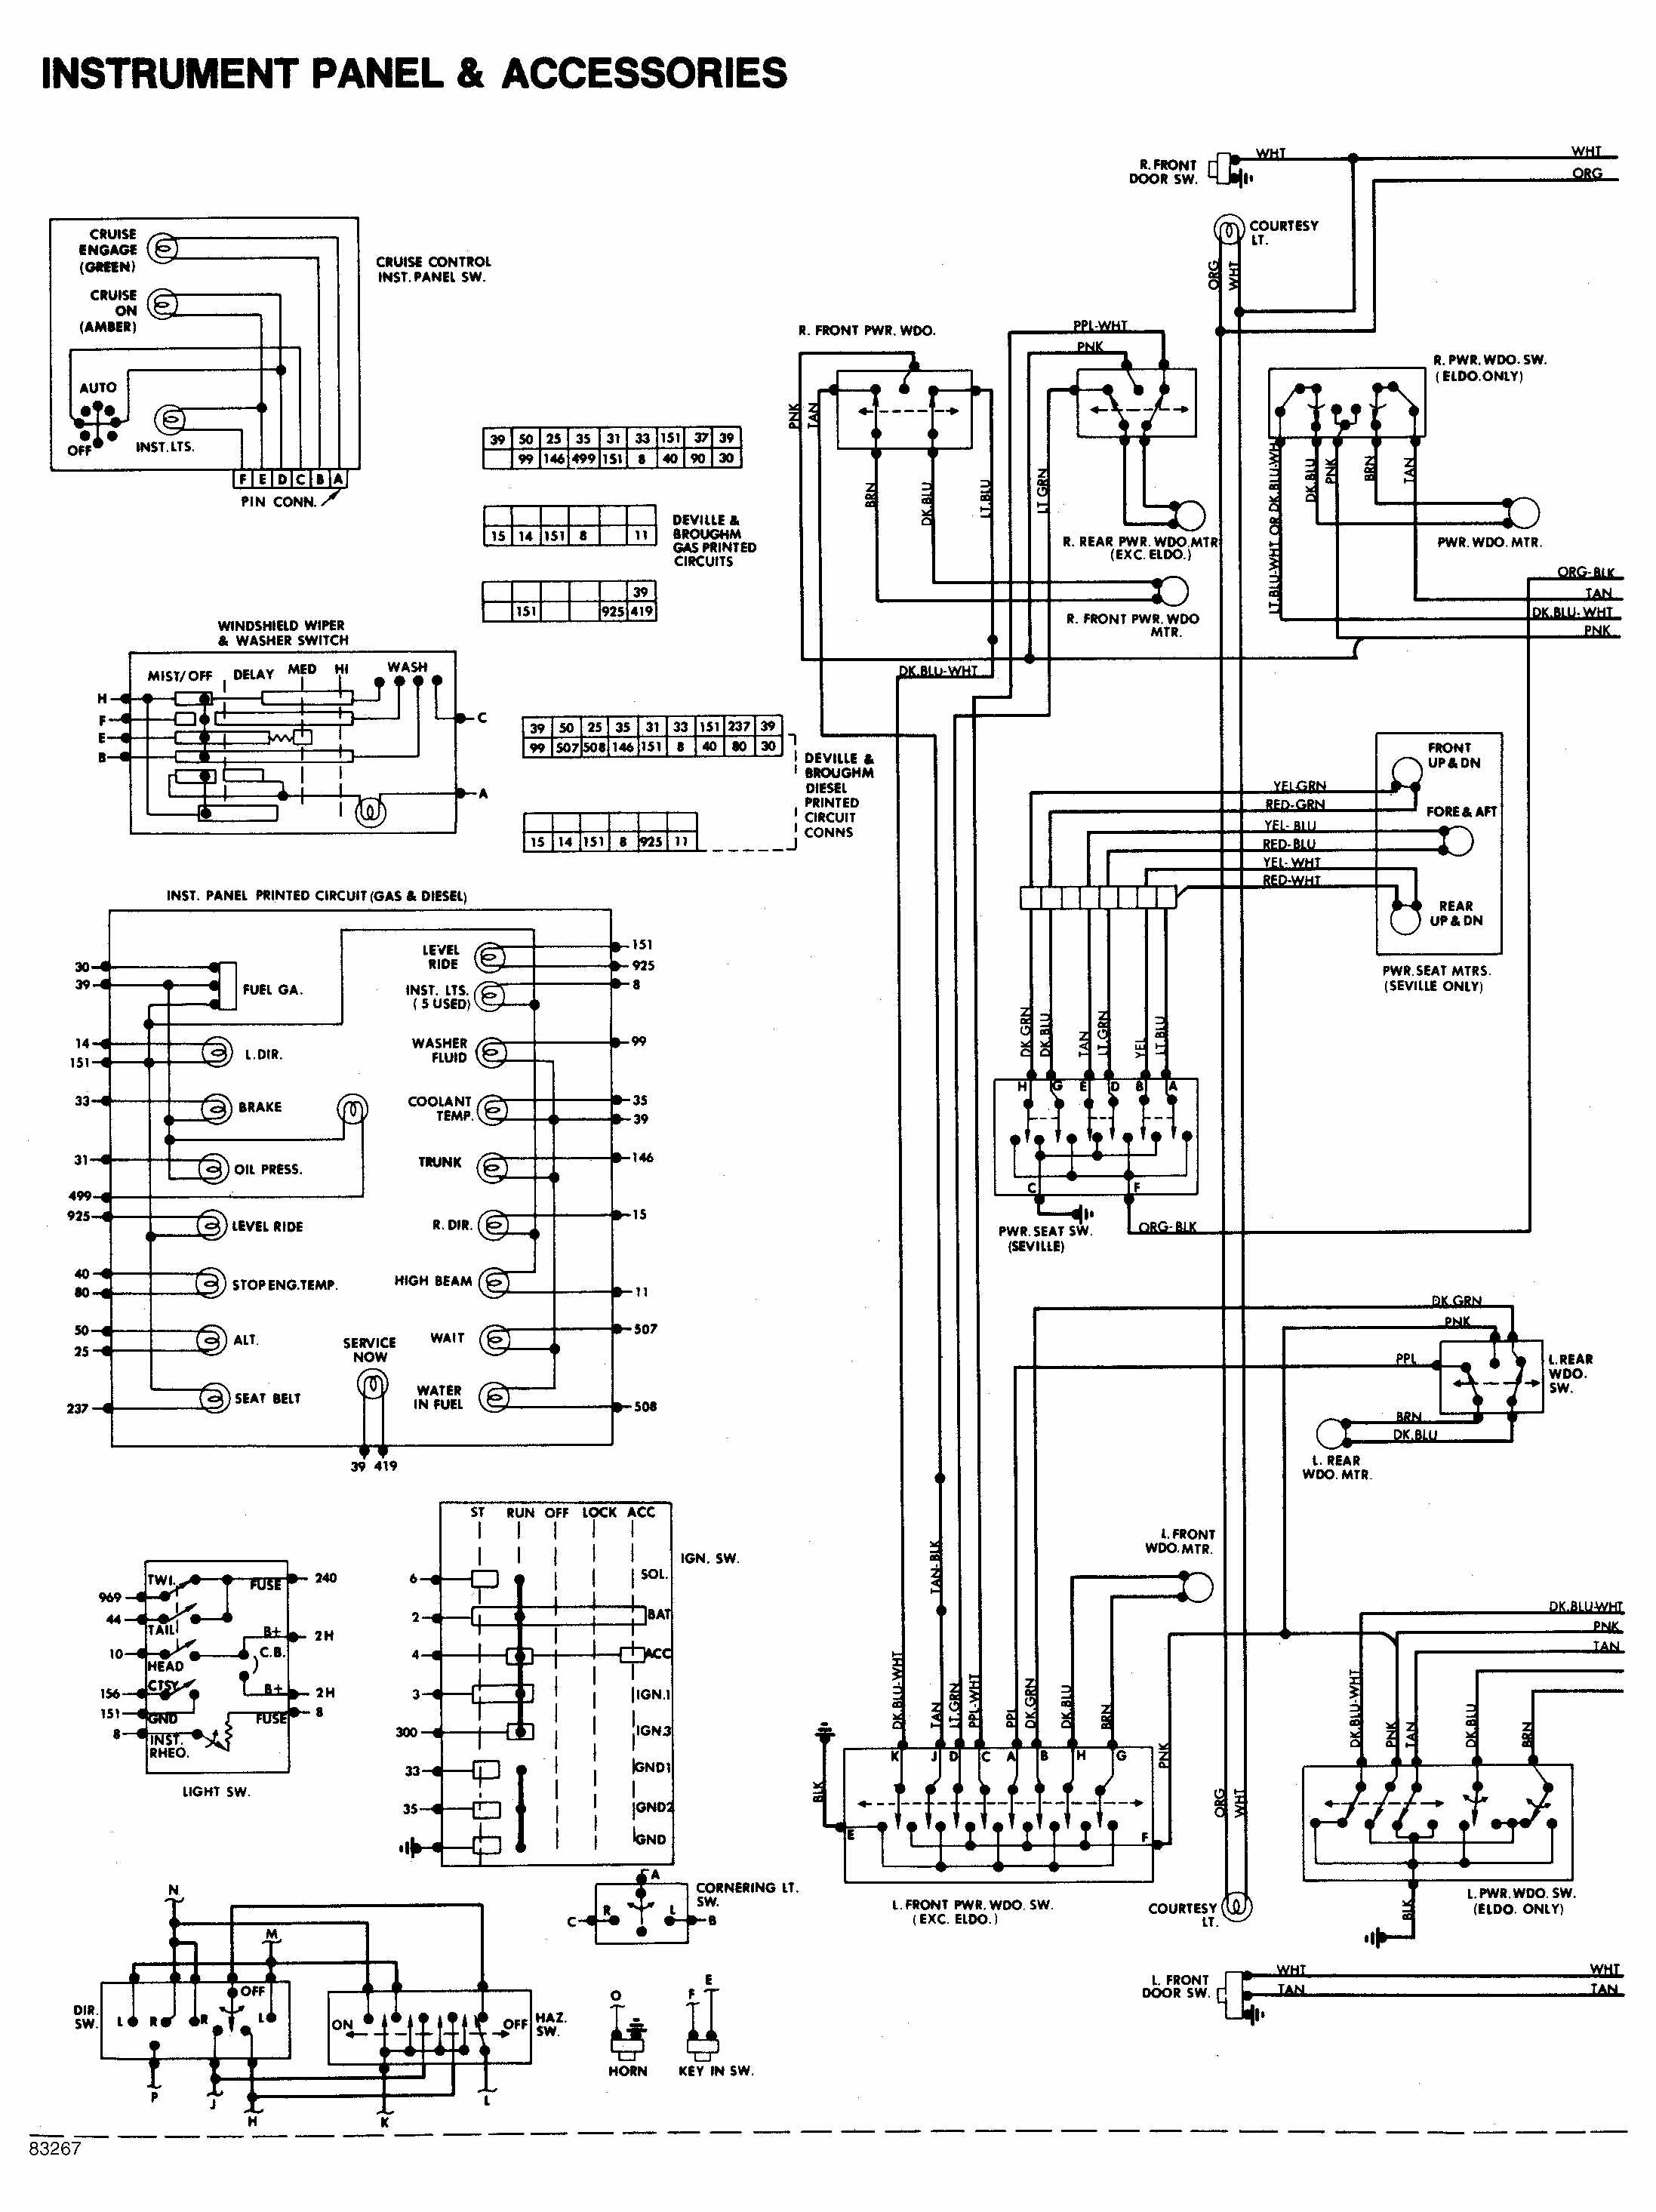 instrument panel and accessories wiring diagram of 1984 cadillac deville gm wiring diagrams gm wiring diagrams online \u2022 wiring diagrams j 1995 cadillac wiring diagrams at crackthecode.co